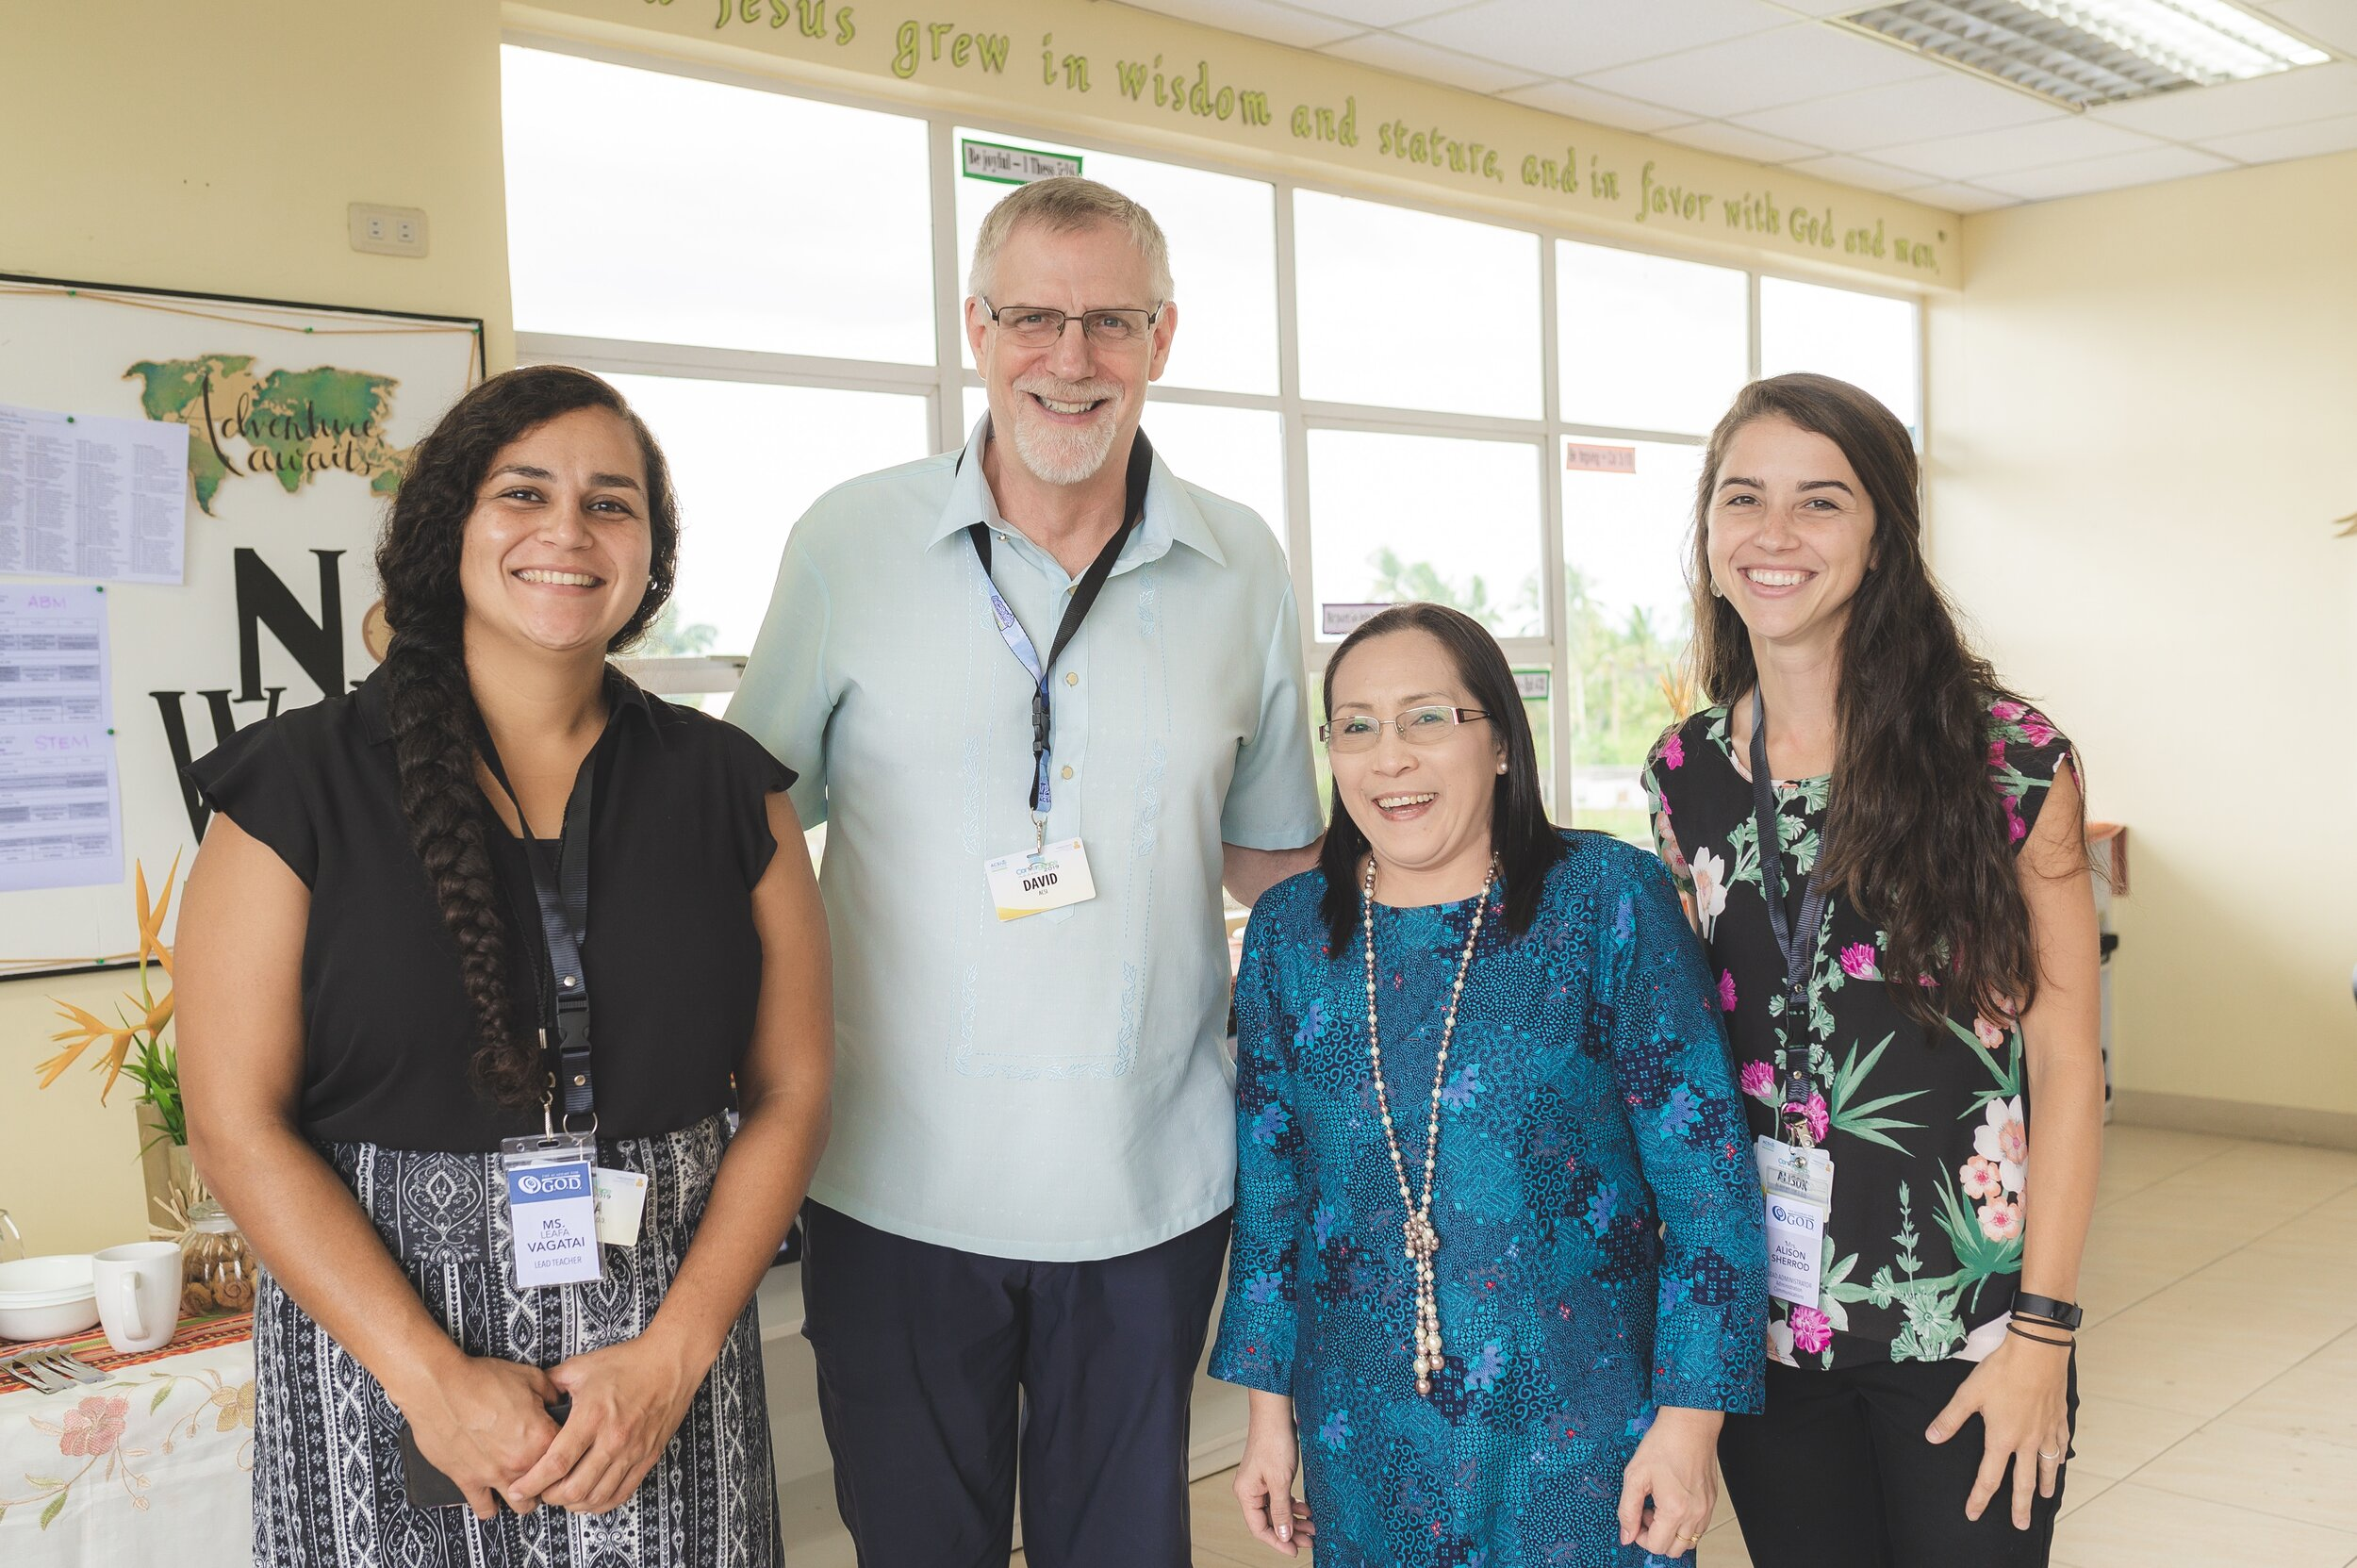 Leafa Vagatai and Alison Sherrod were blessed to be invited to the ACSI Summit Leadership Conference, hosted by ACSI Philippines Director, Ces Tajales and ACSI Global Vice President, Dr. David Wilcox.